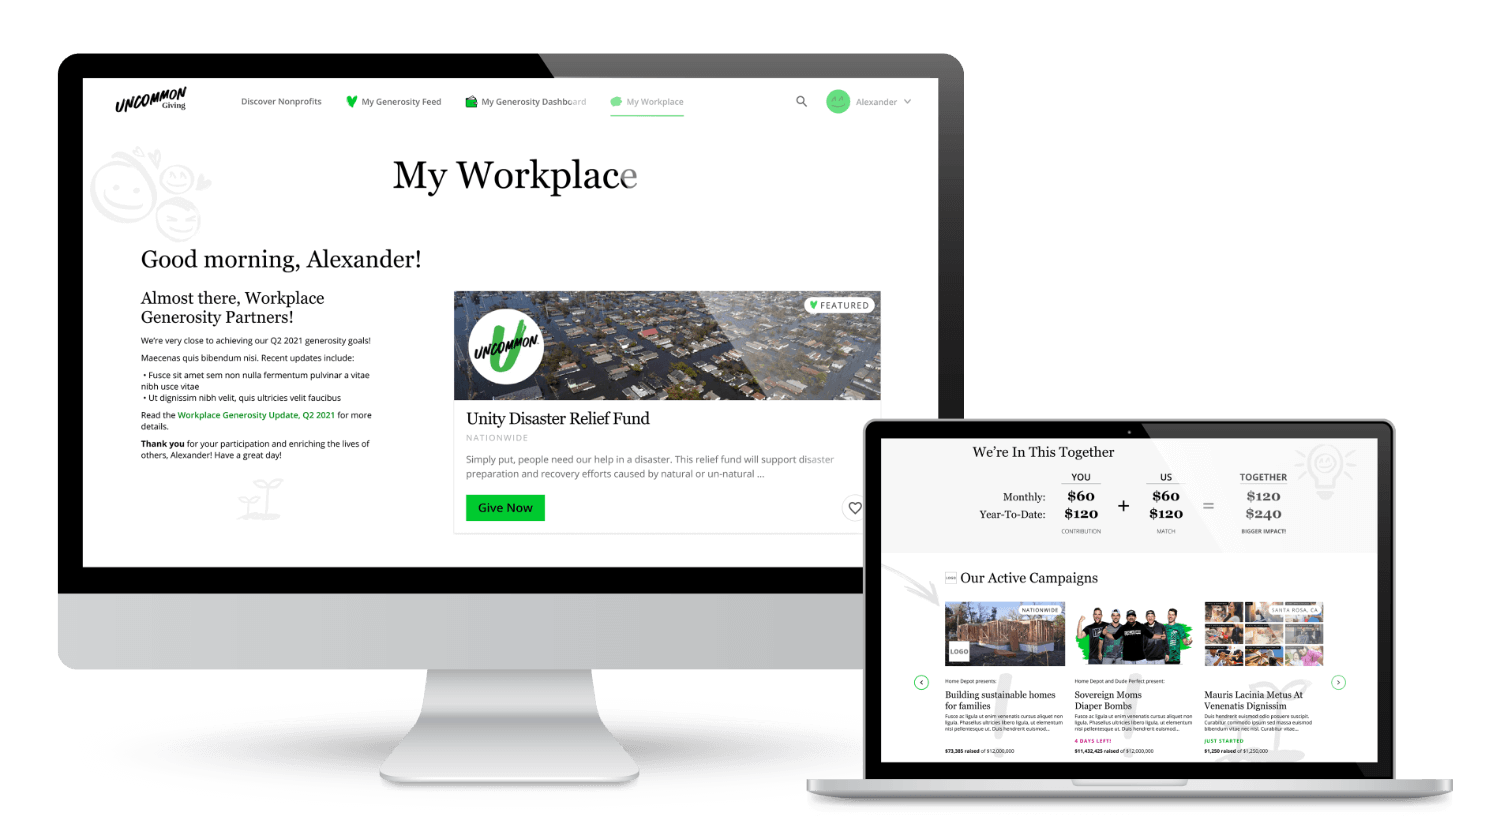 Uncommon Giving workplace platform shown on Mac computer and Macbook.